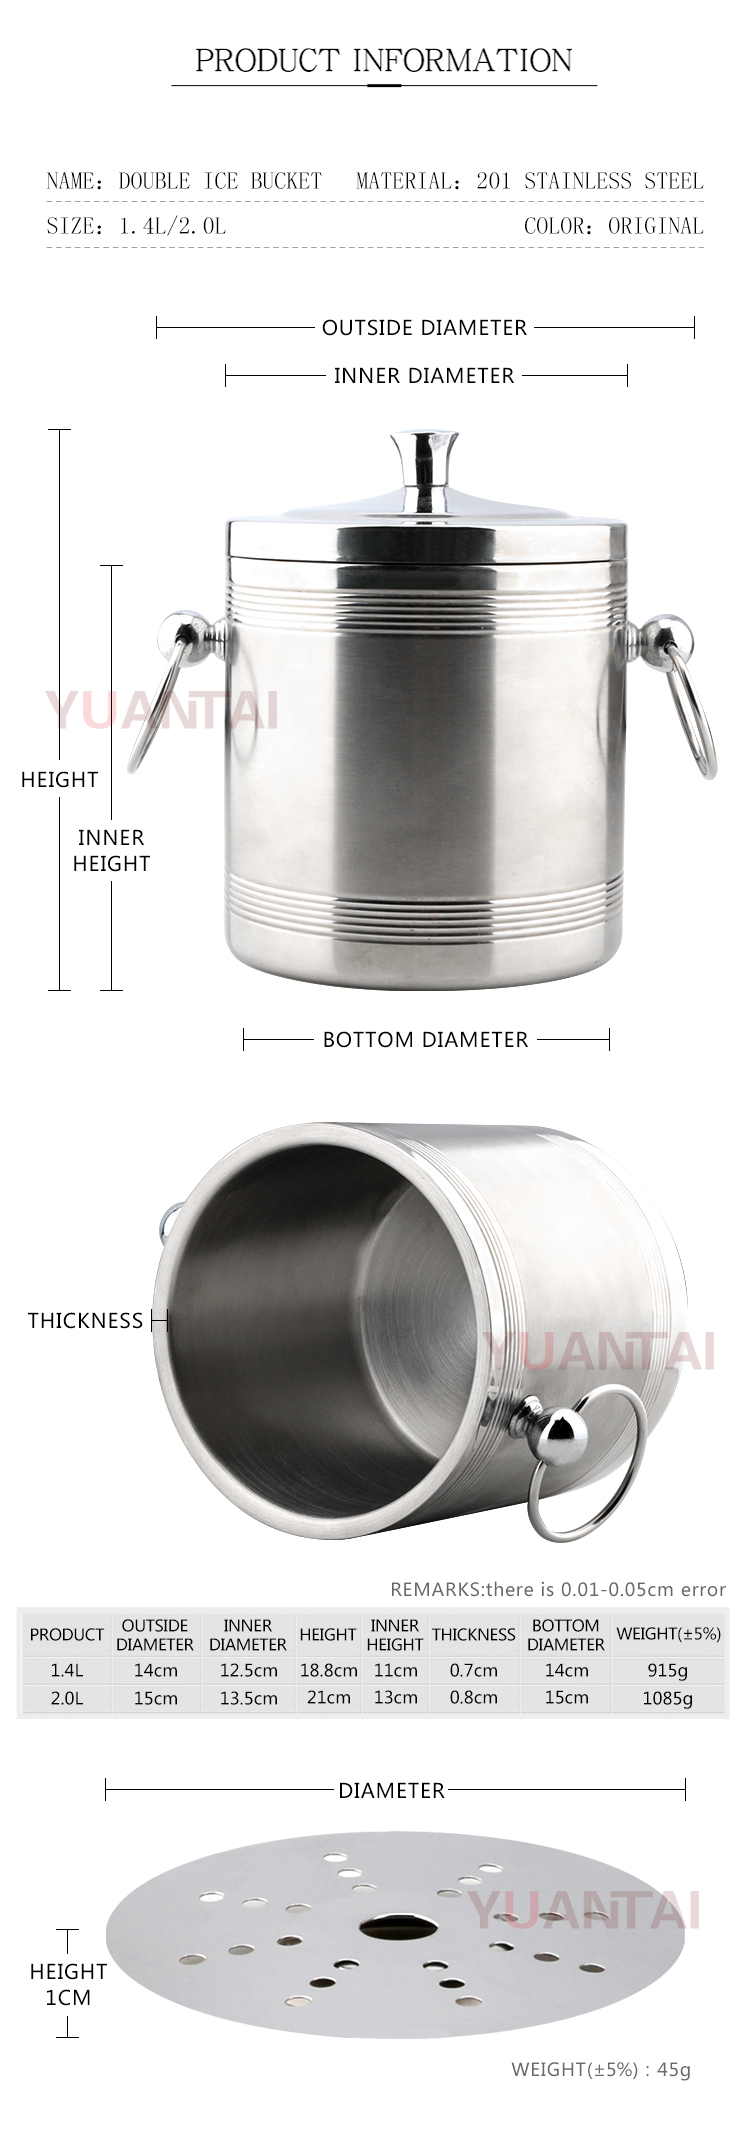 High quality stainless steel ice bucket and champagne bucket with double ears.